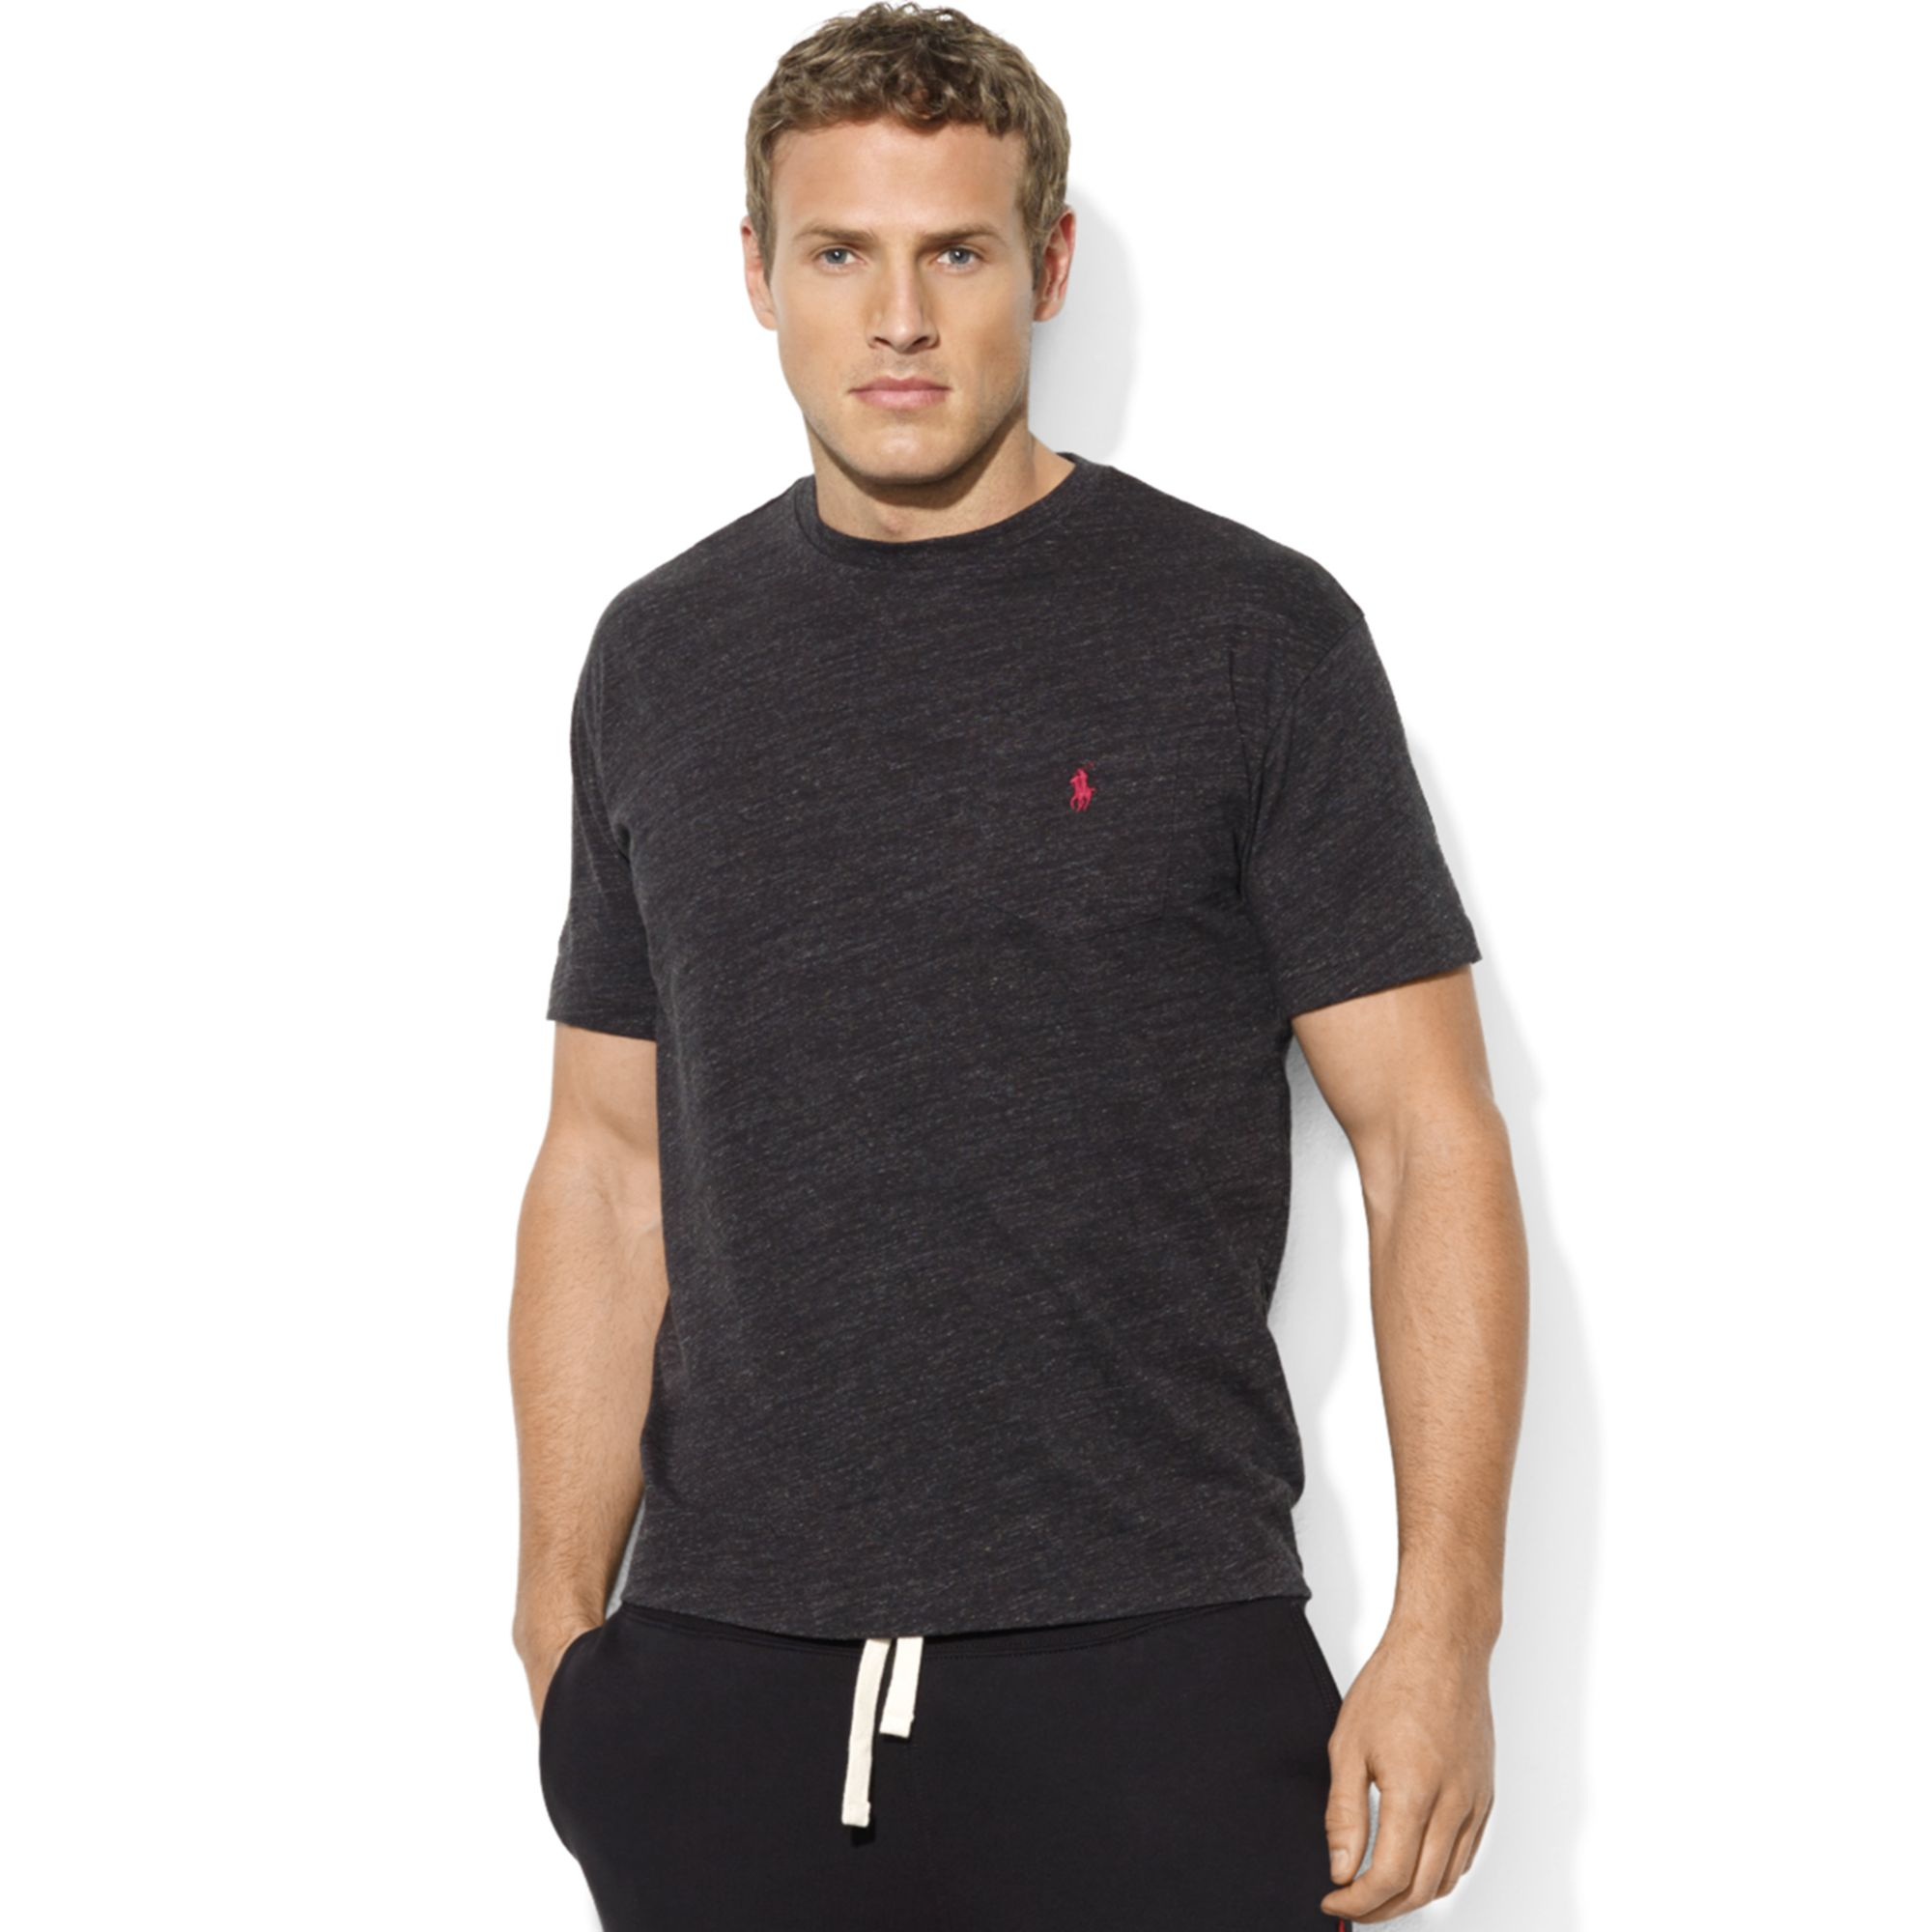 ralph lauren classic fit shortsleeve pocket crew neck cotton jersey tshirt in black for men lyst. Black Bedroom Furniture Sets. Home Design Ideas